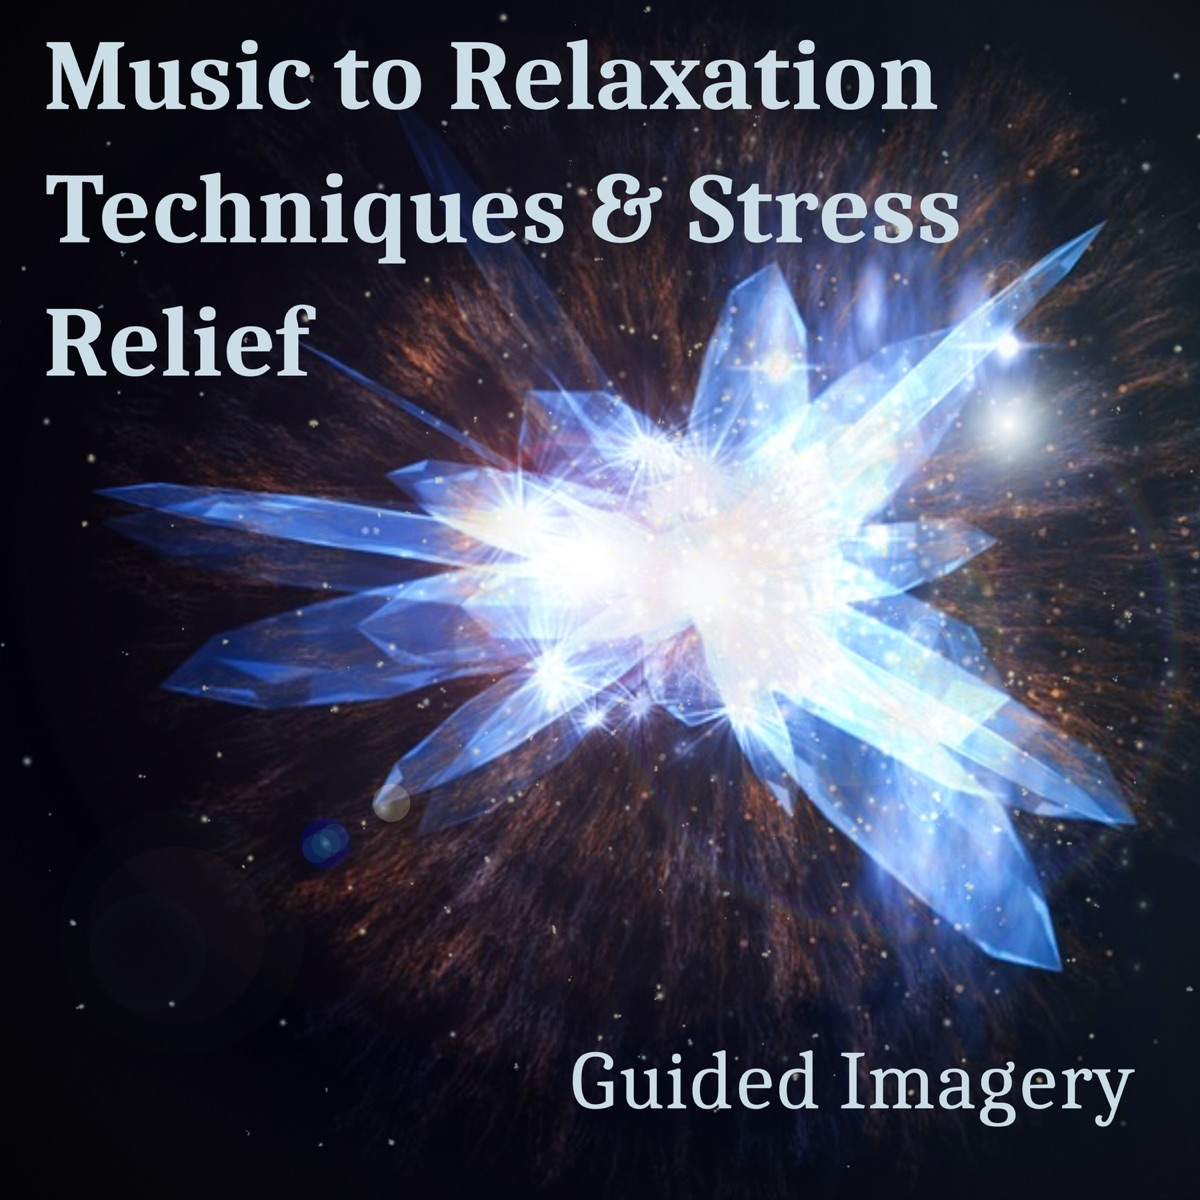 Music to Relaxation Techniques & Stress Relief: Guided